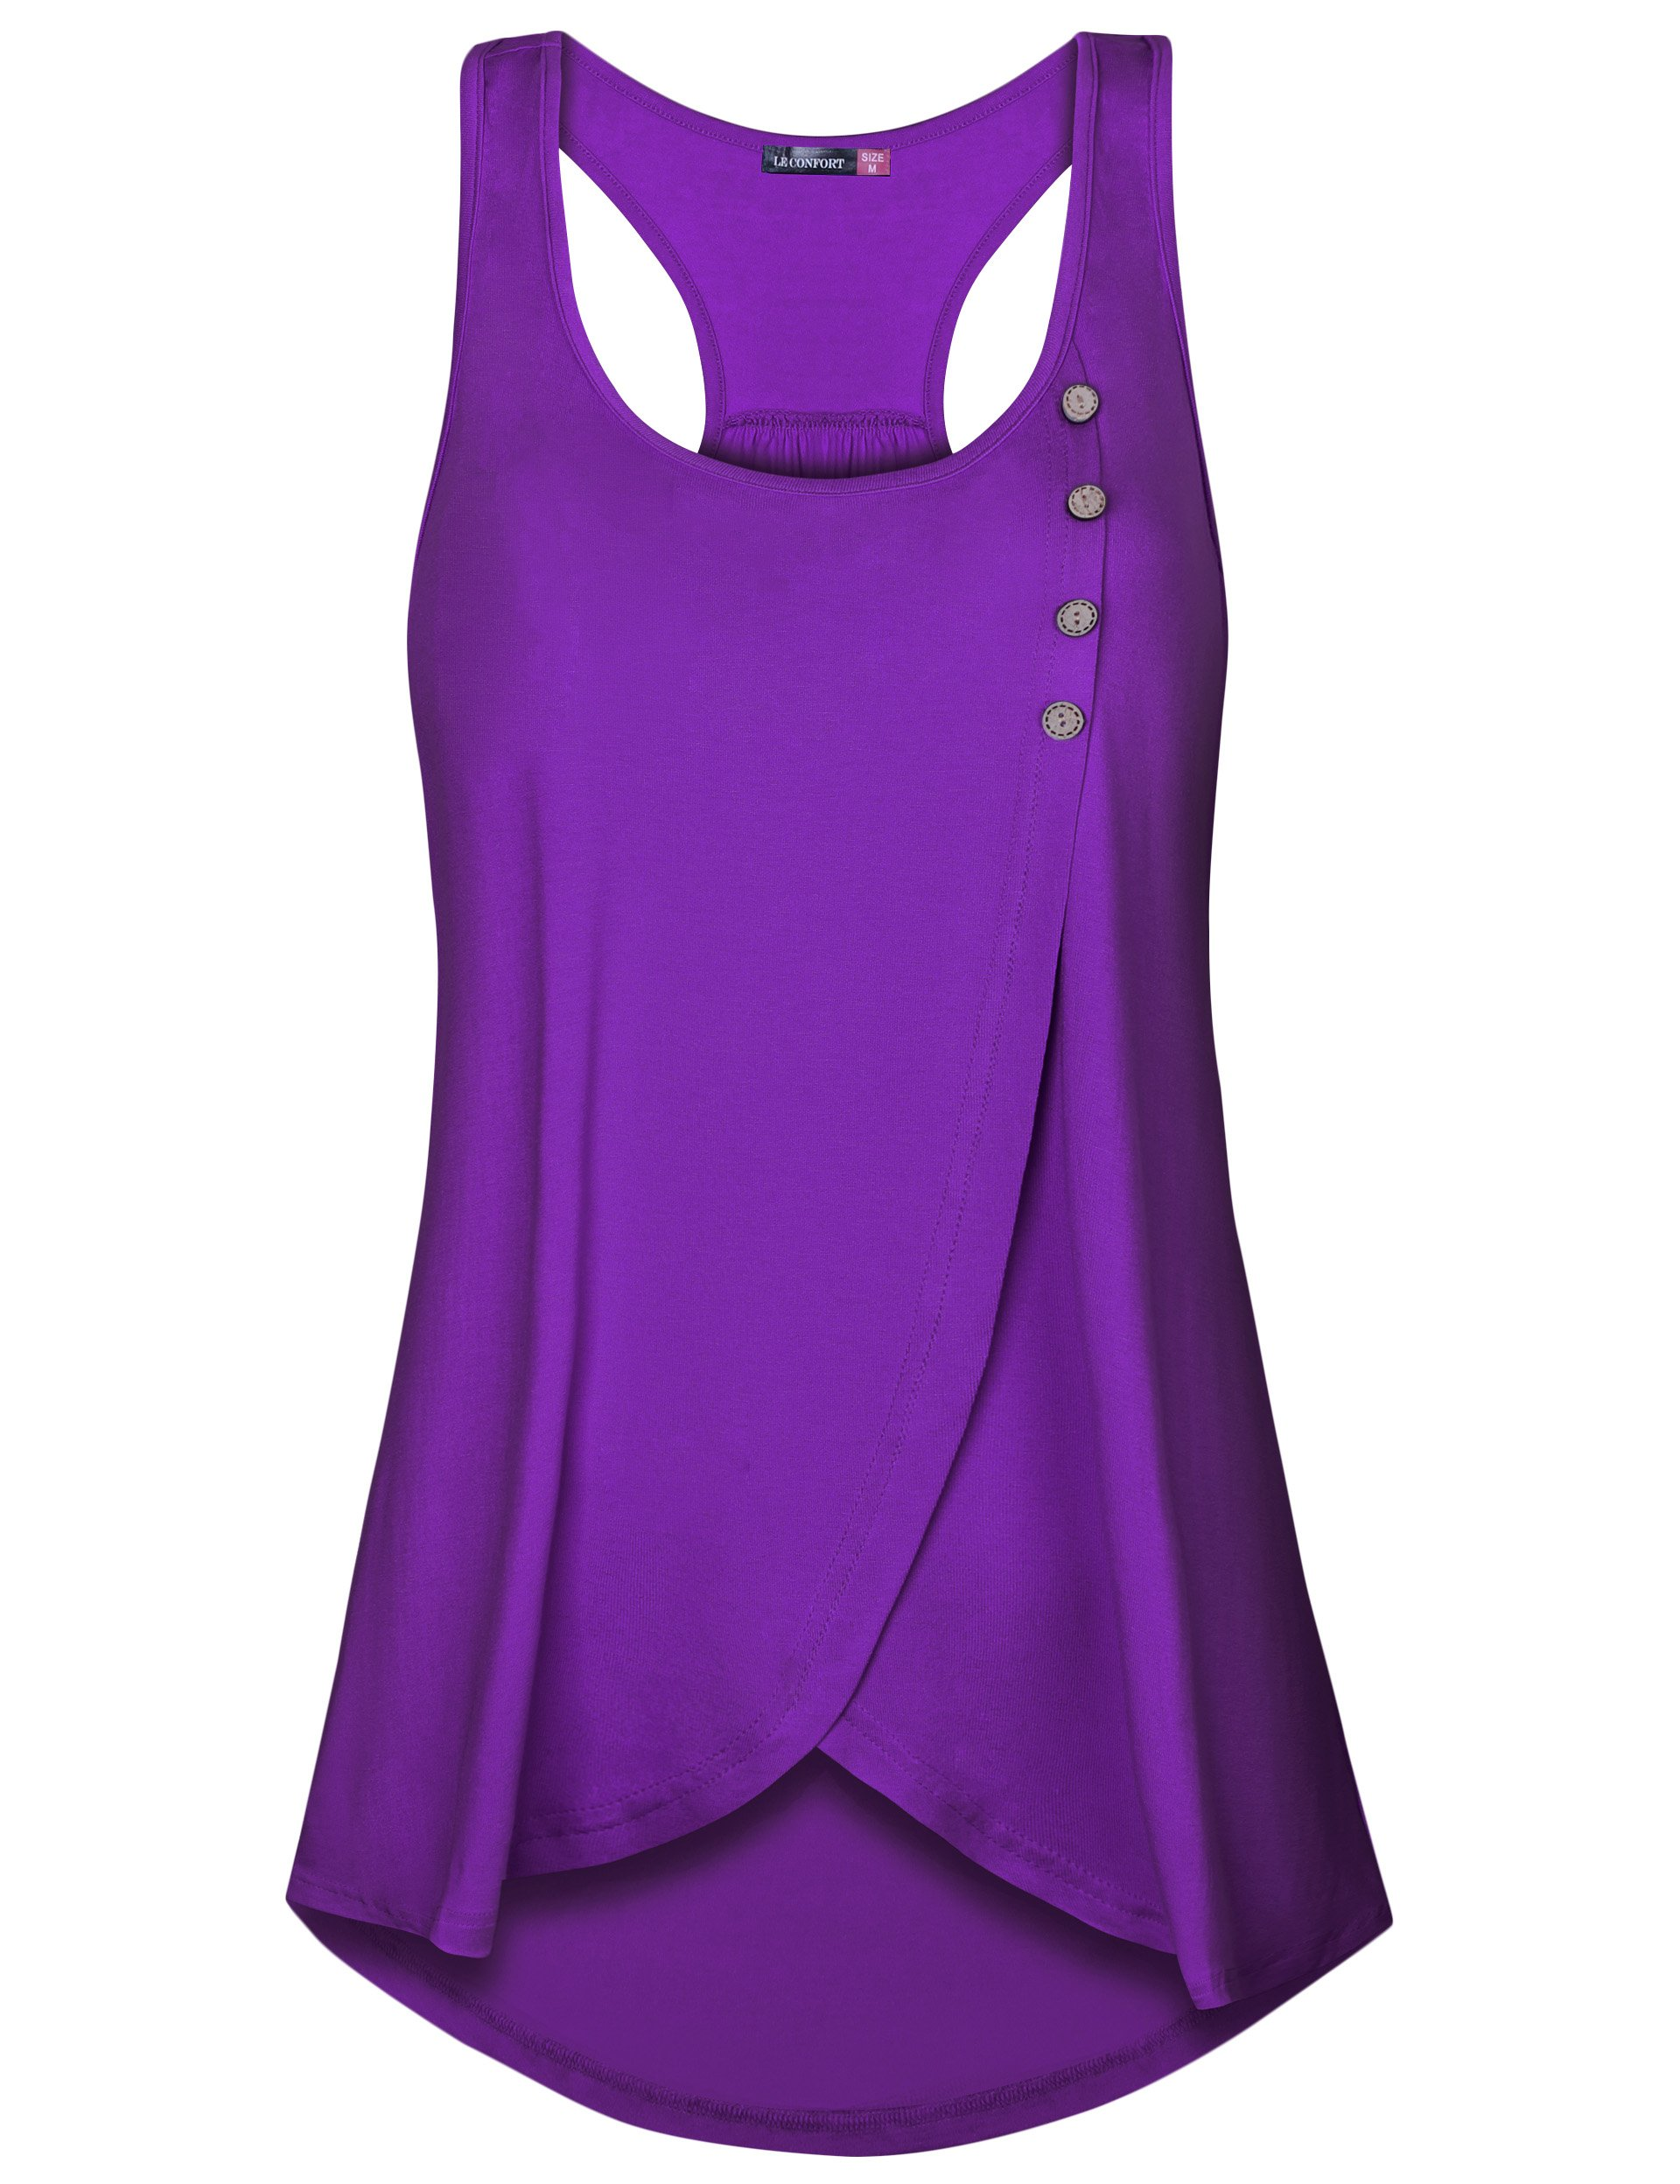 Le Vonfort Running Tank Tops for Women Sleeveless Shirts Button Front A-Line Curve Hem Tunic Tops (Purple, XX-Large)